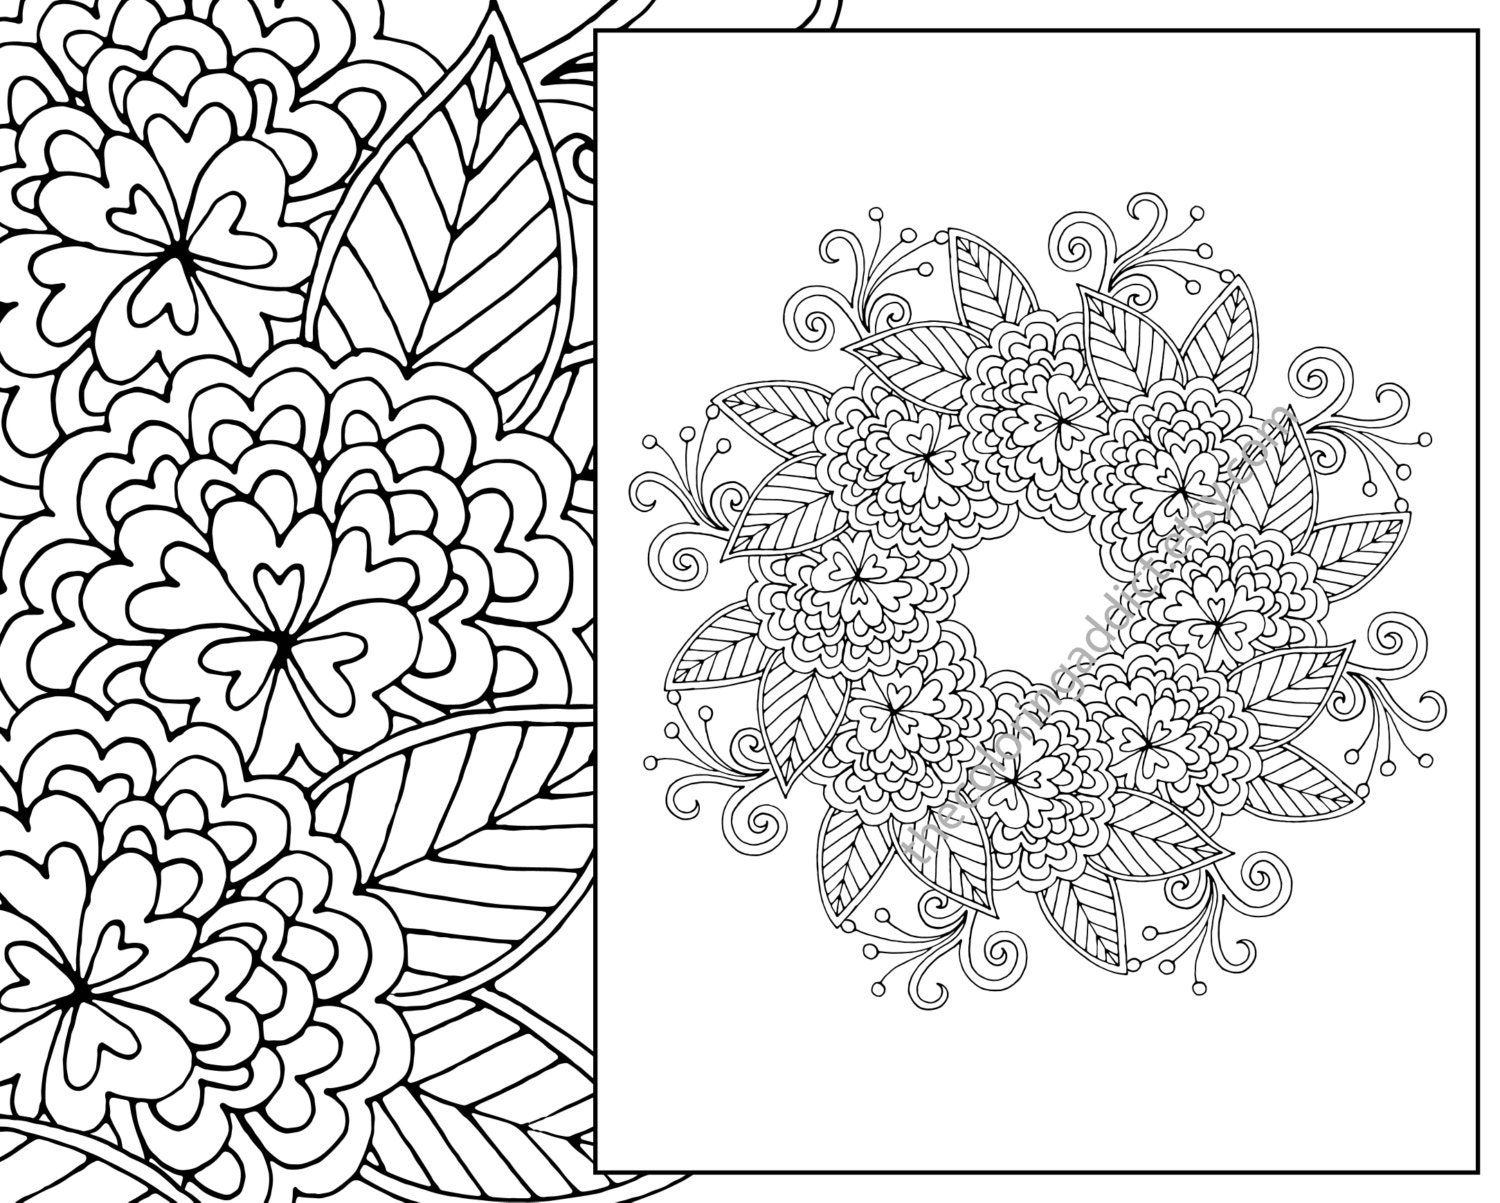 Botanical art coloring book - Floral Coloring Page Adult Coloring Page Digital Flower Mandala Henna Floral Coloring Botanical Coloring Page Flower Colouring Sheet